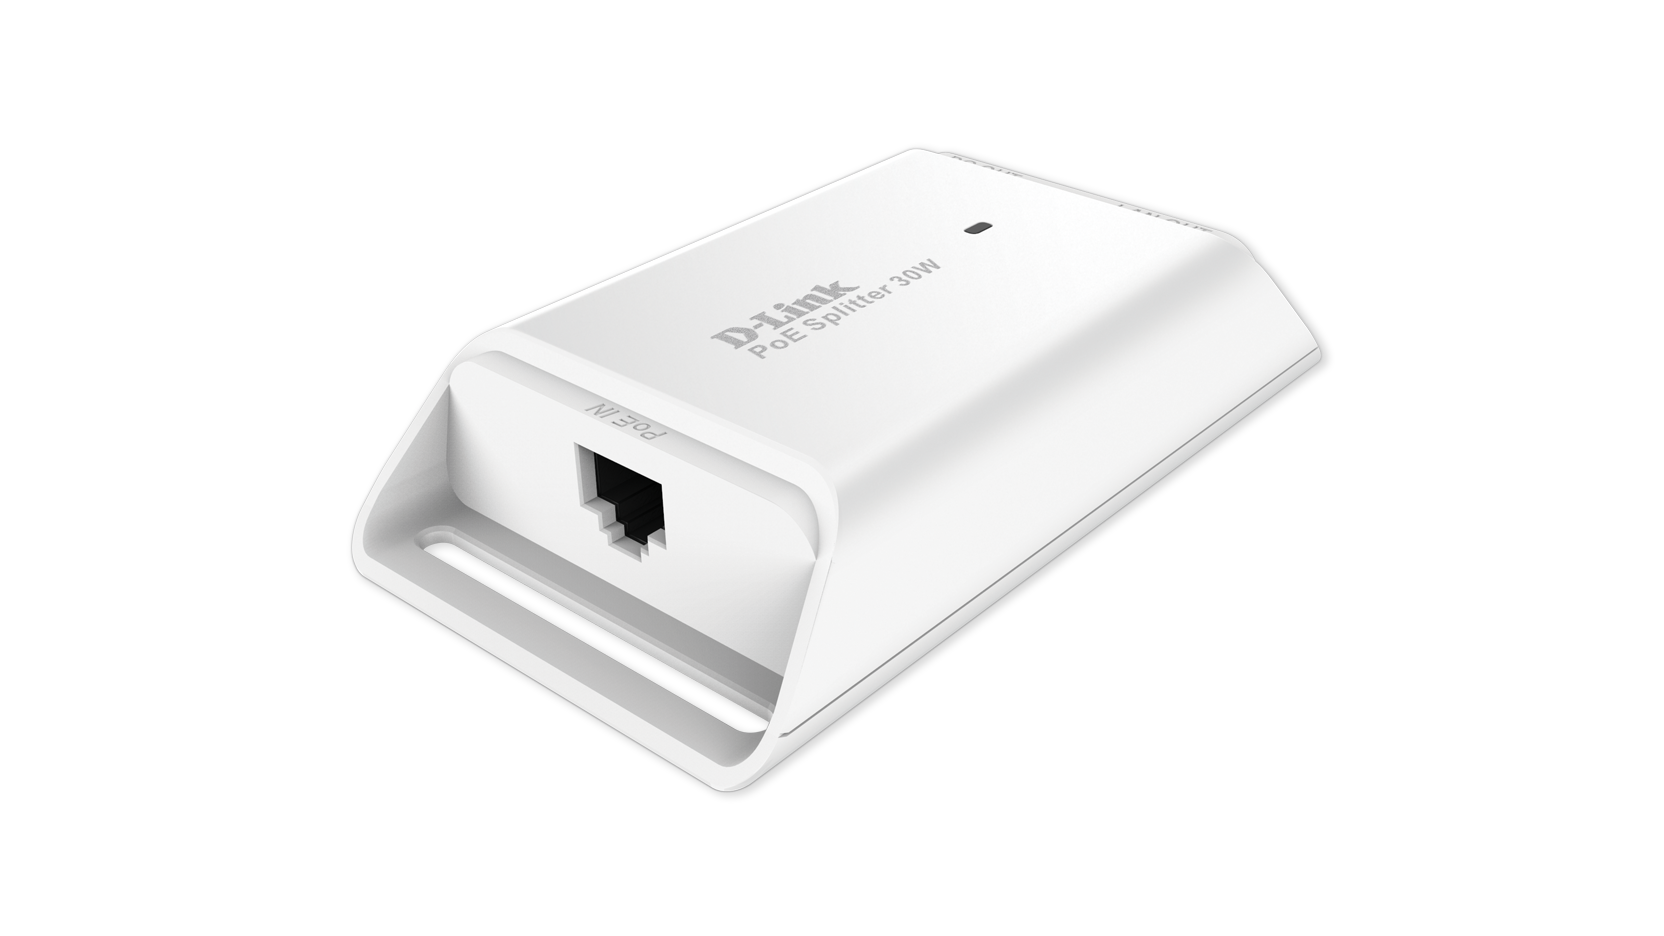 1 Port Gigabit Poe Splitter D Link Power Over Ethernet Or Which Is A Much Higher Voltage And Not Dpe 301gs Side 1664936